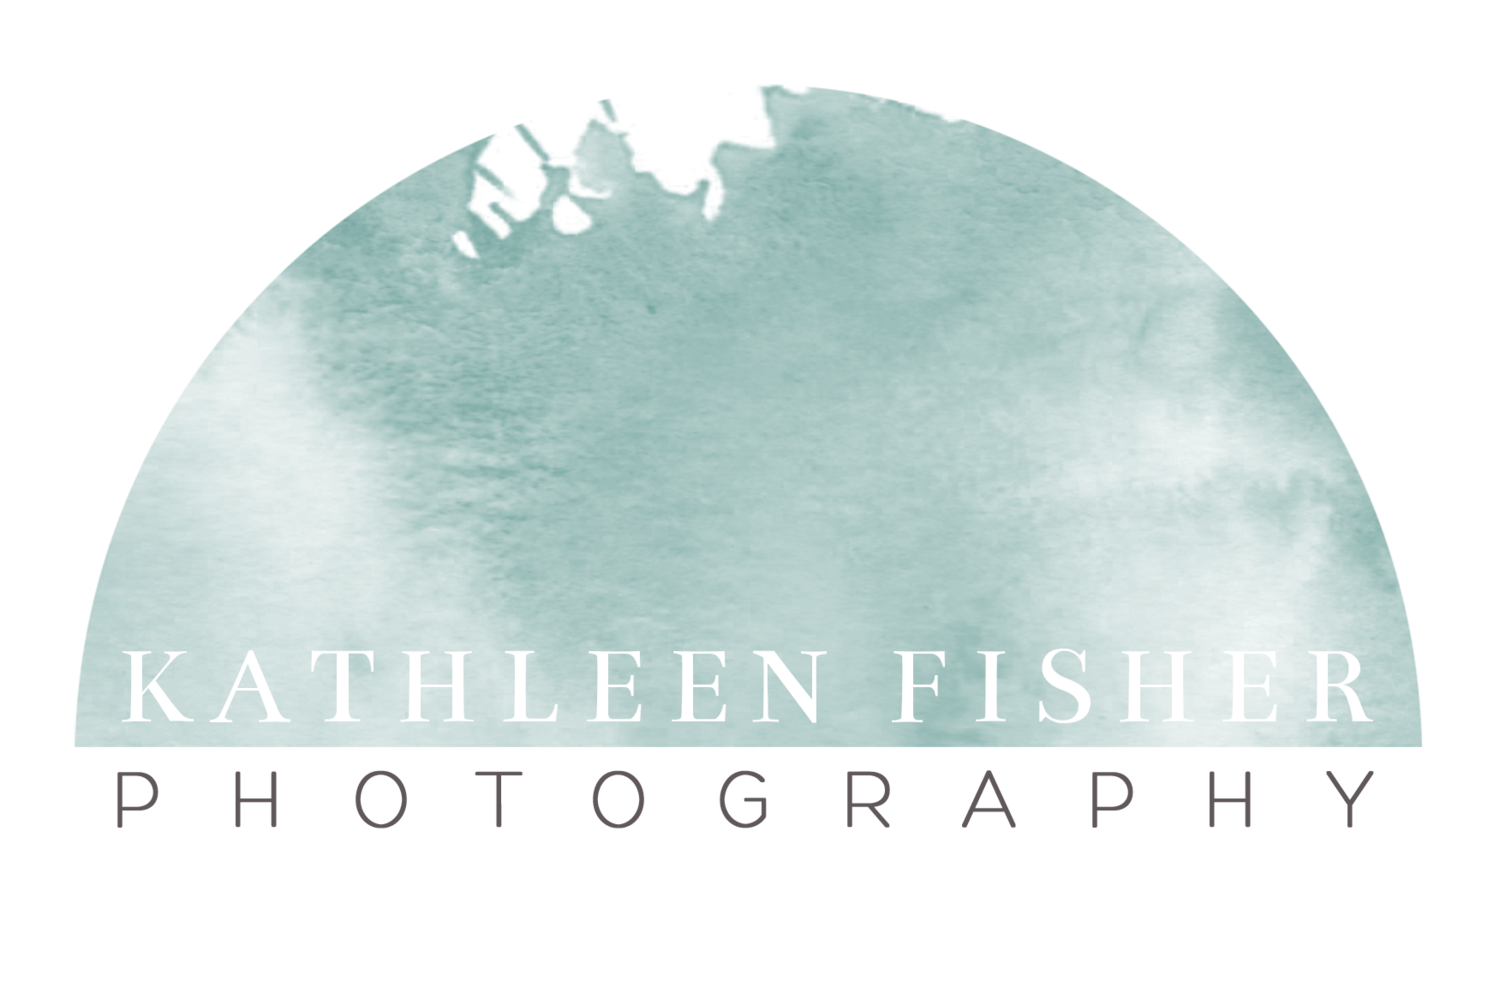 Kathleen Fisher Photography